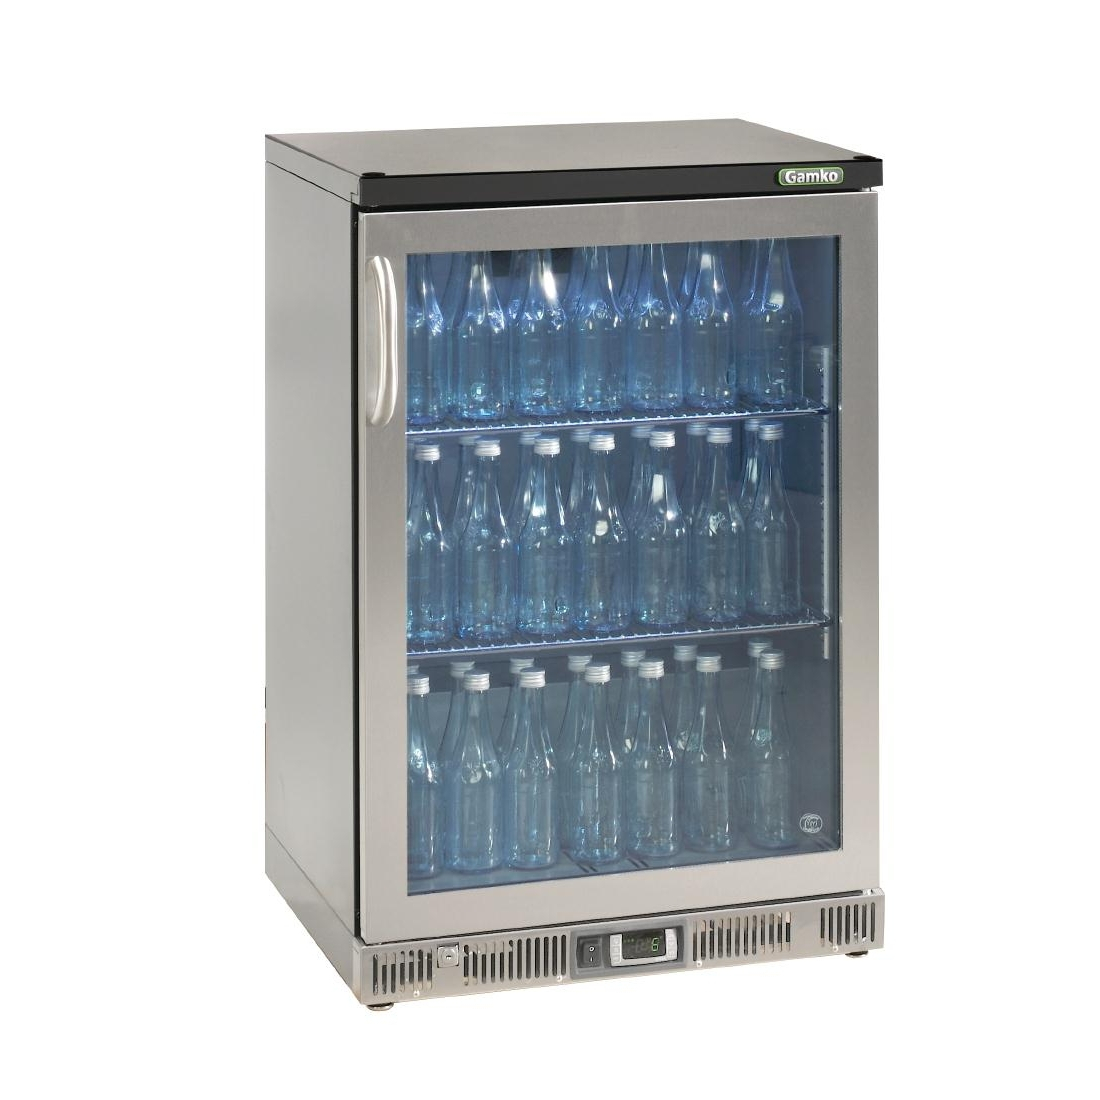 Gamko Bottle Cooler - Single Hinged Door 150 Ltr Stainless Steel